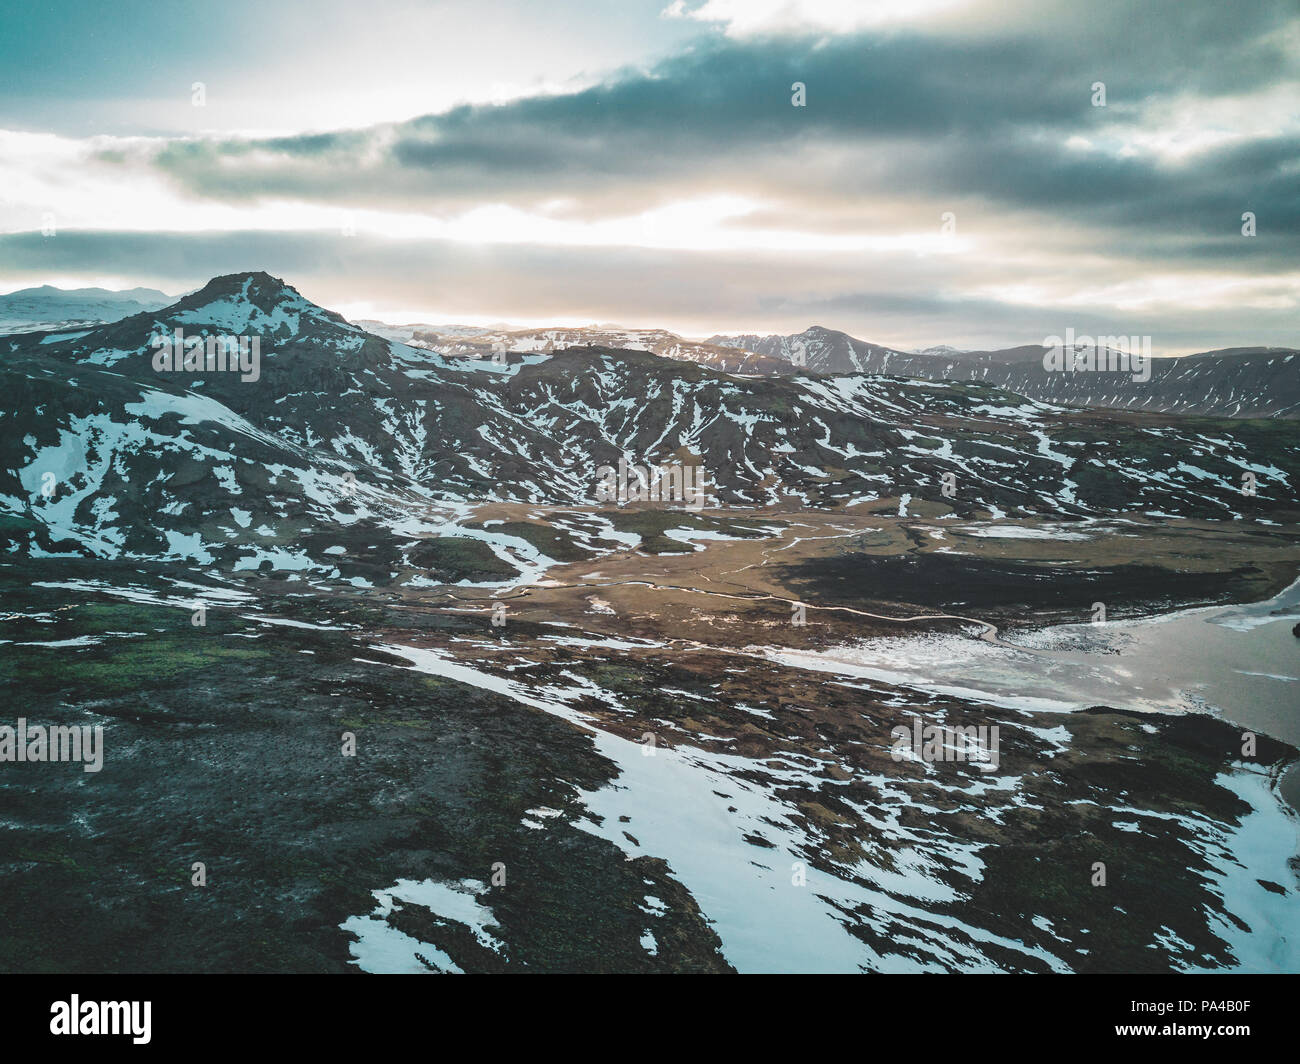 Aerial drone photo of a empty lake a huge volcanic mountain Snaefellsjokull in the distance, Reykjavik, Iceland. - Stock Image